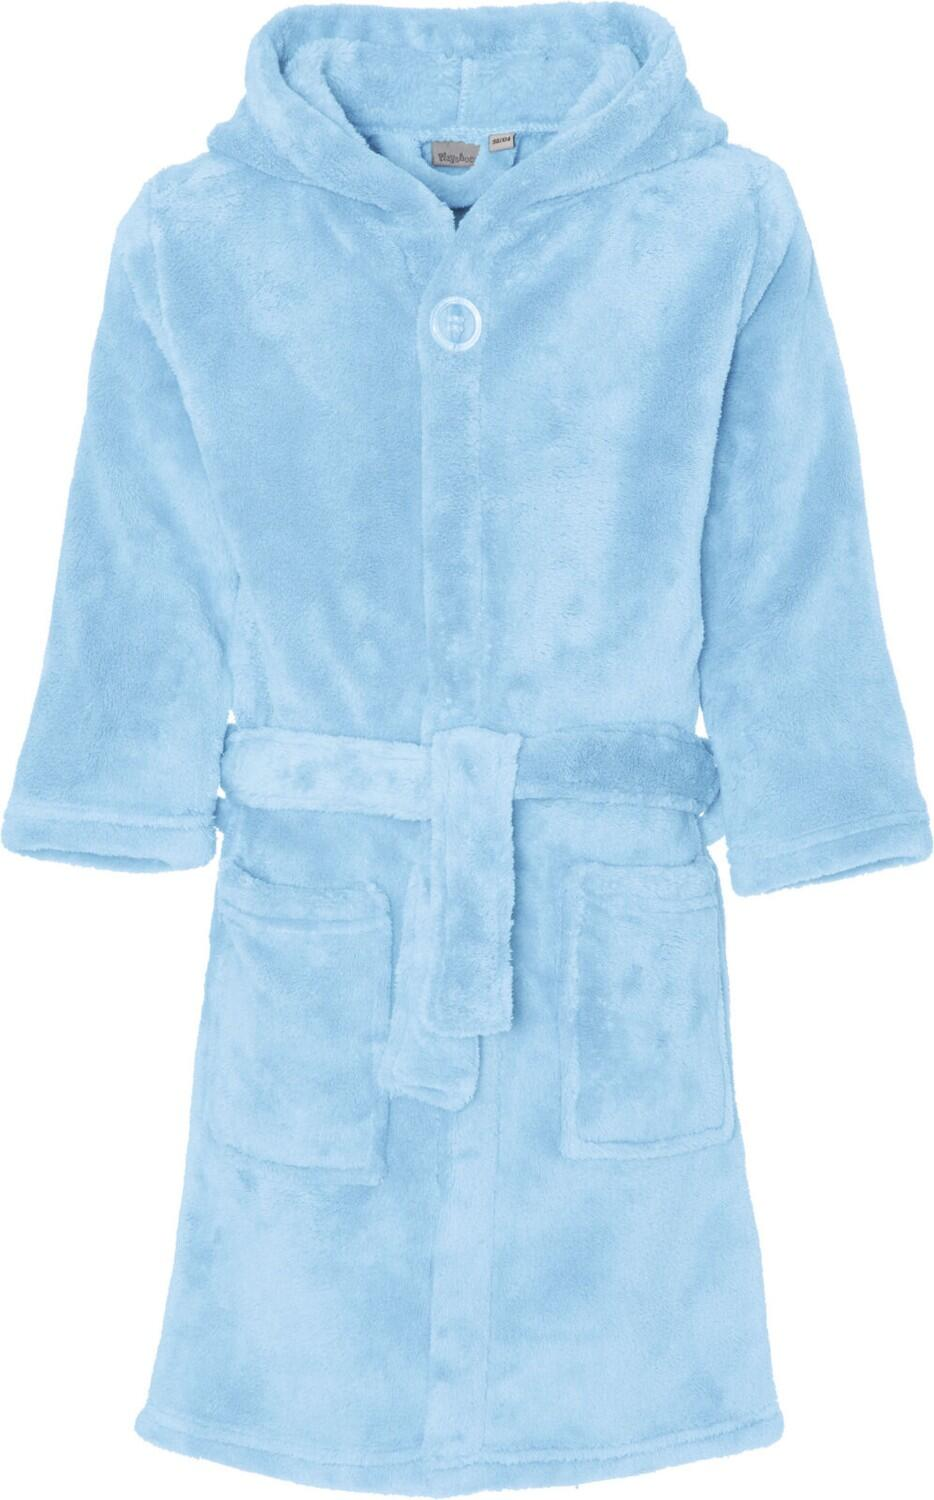 Kinder Bademantel Fleece uni hellblau